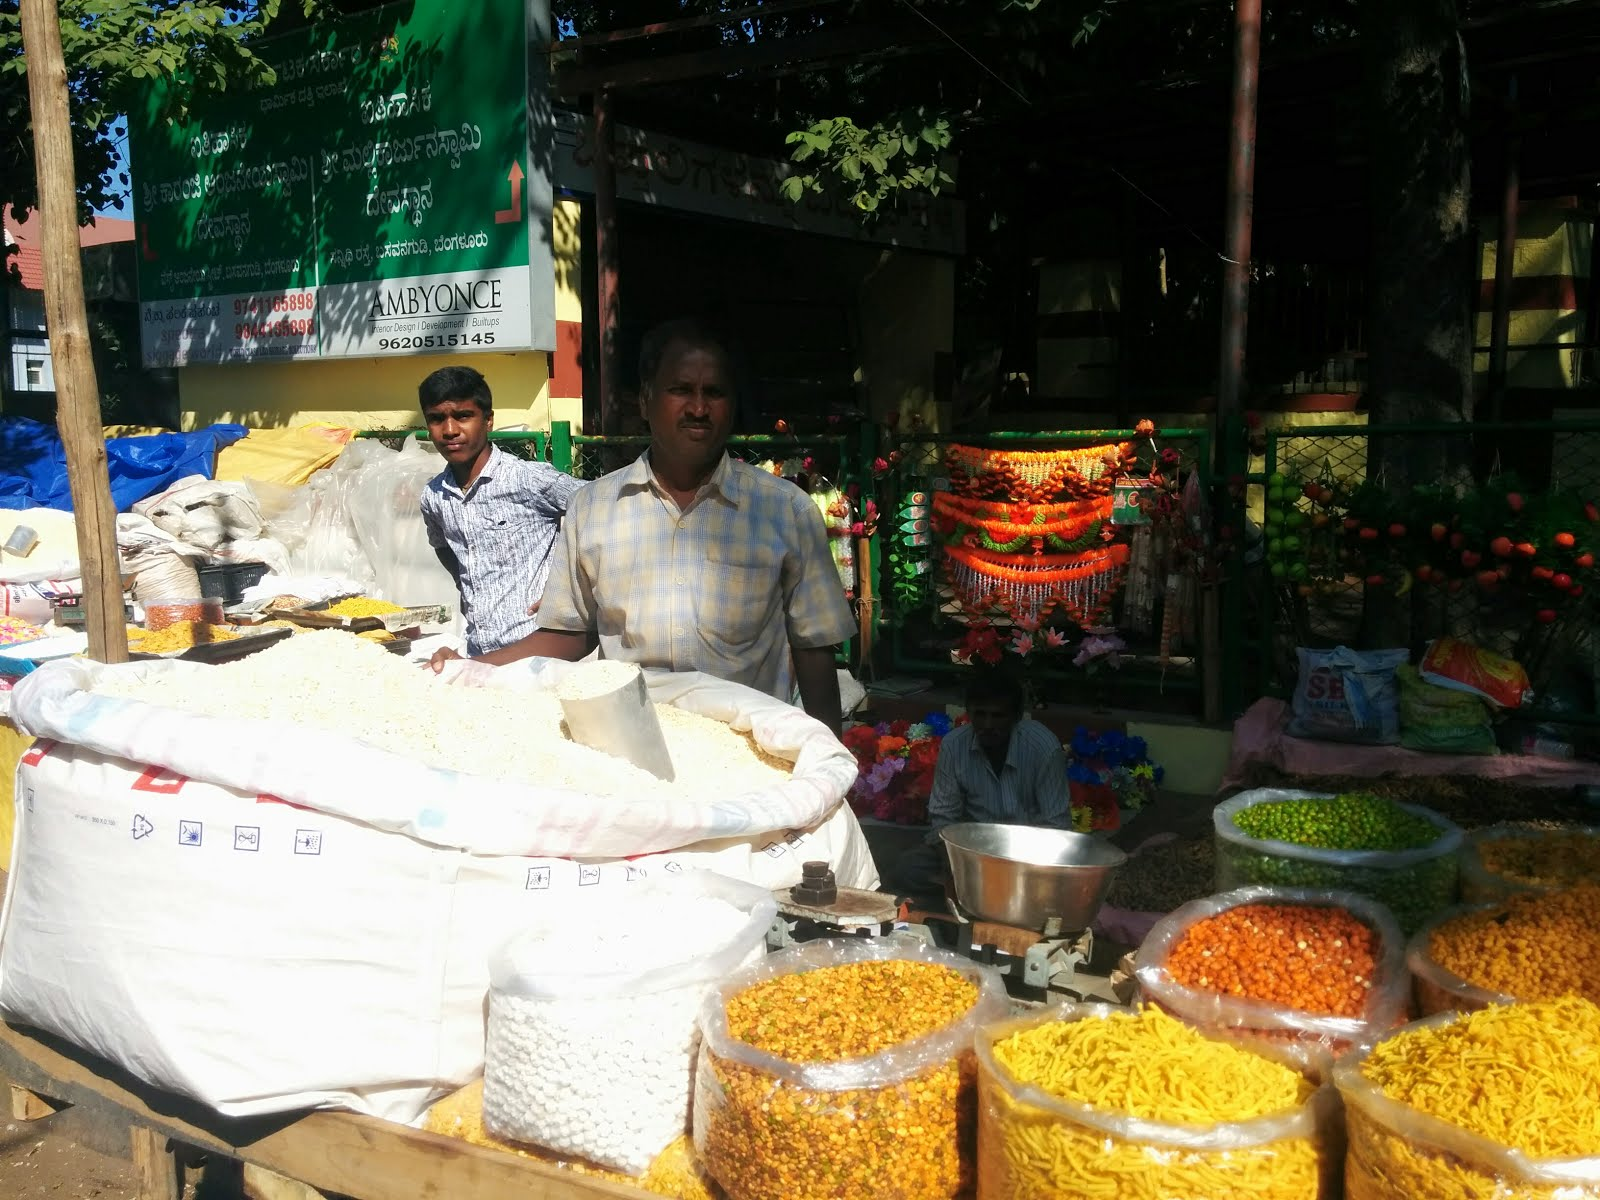 Street Vendor at Kadalekai Parishe